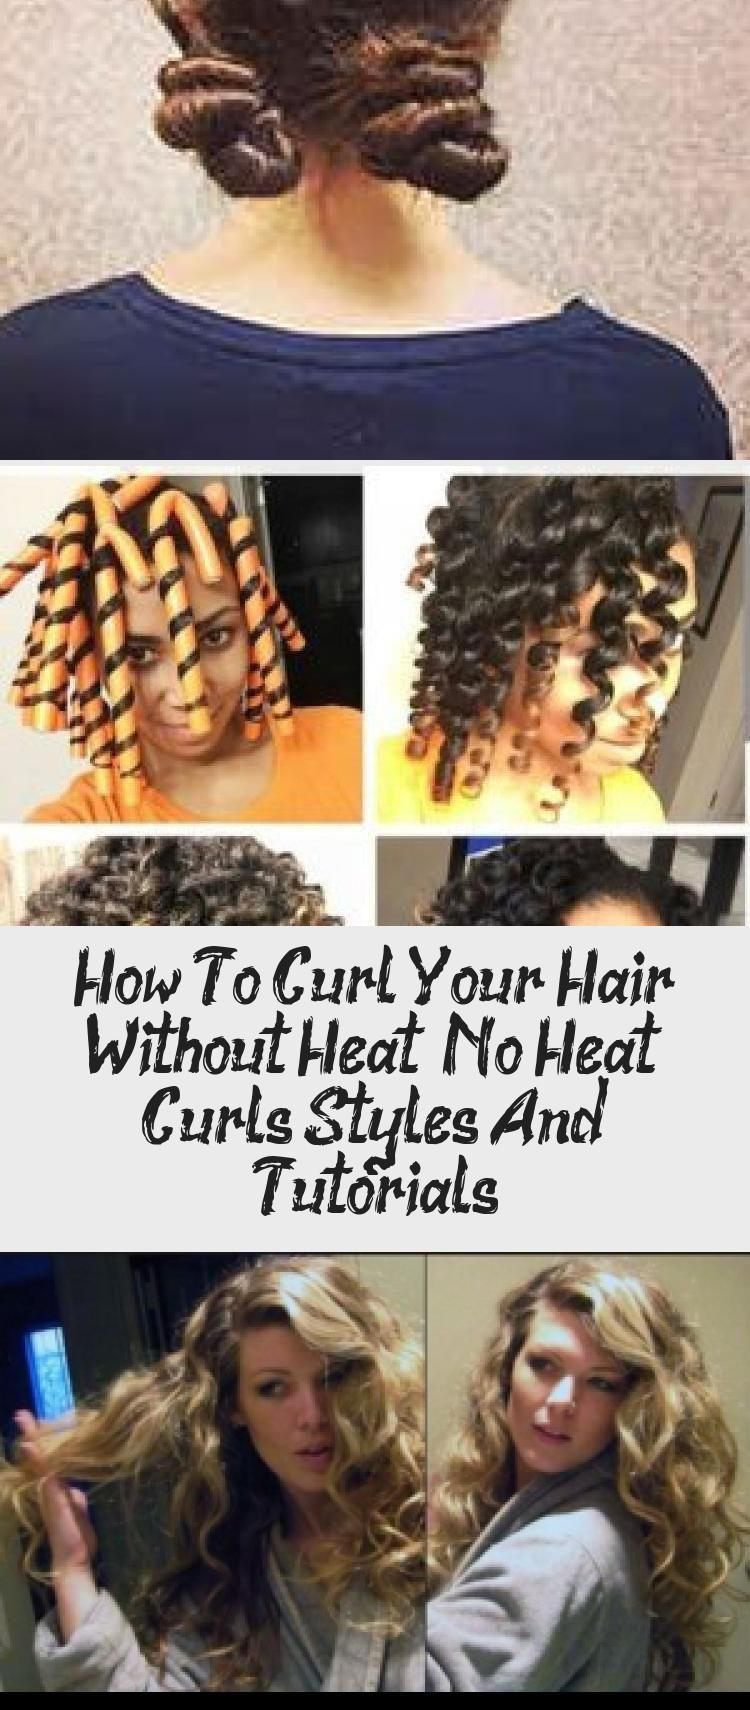 How To Curl Your Hair Without Heat   No Heat Curls Styles And Tutorials #noheathair How To Curl Your Hair Without Heat   No Heat #Curls #Styles and Tutorials #vintagehairstylesMedium #vintagehairstyles90s #vintagehairstylesVictorian #vintagehairstylesPeinados #vintagehairstylesWithBangs #noheathair How To Curl Your Hair Without Heat   No Heat Curls Styles And Tutorials #noheathair How To Curl Your Hair Without Heat   No Heat #Curls #Styles and Tutorials #vintagehairstylesMedium #vintagehairstyle #noheathair